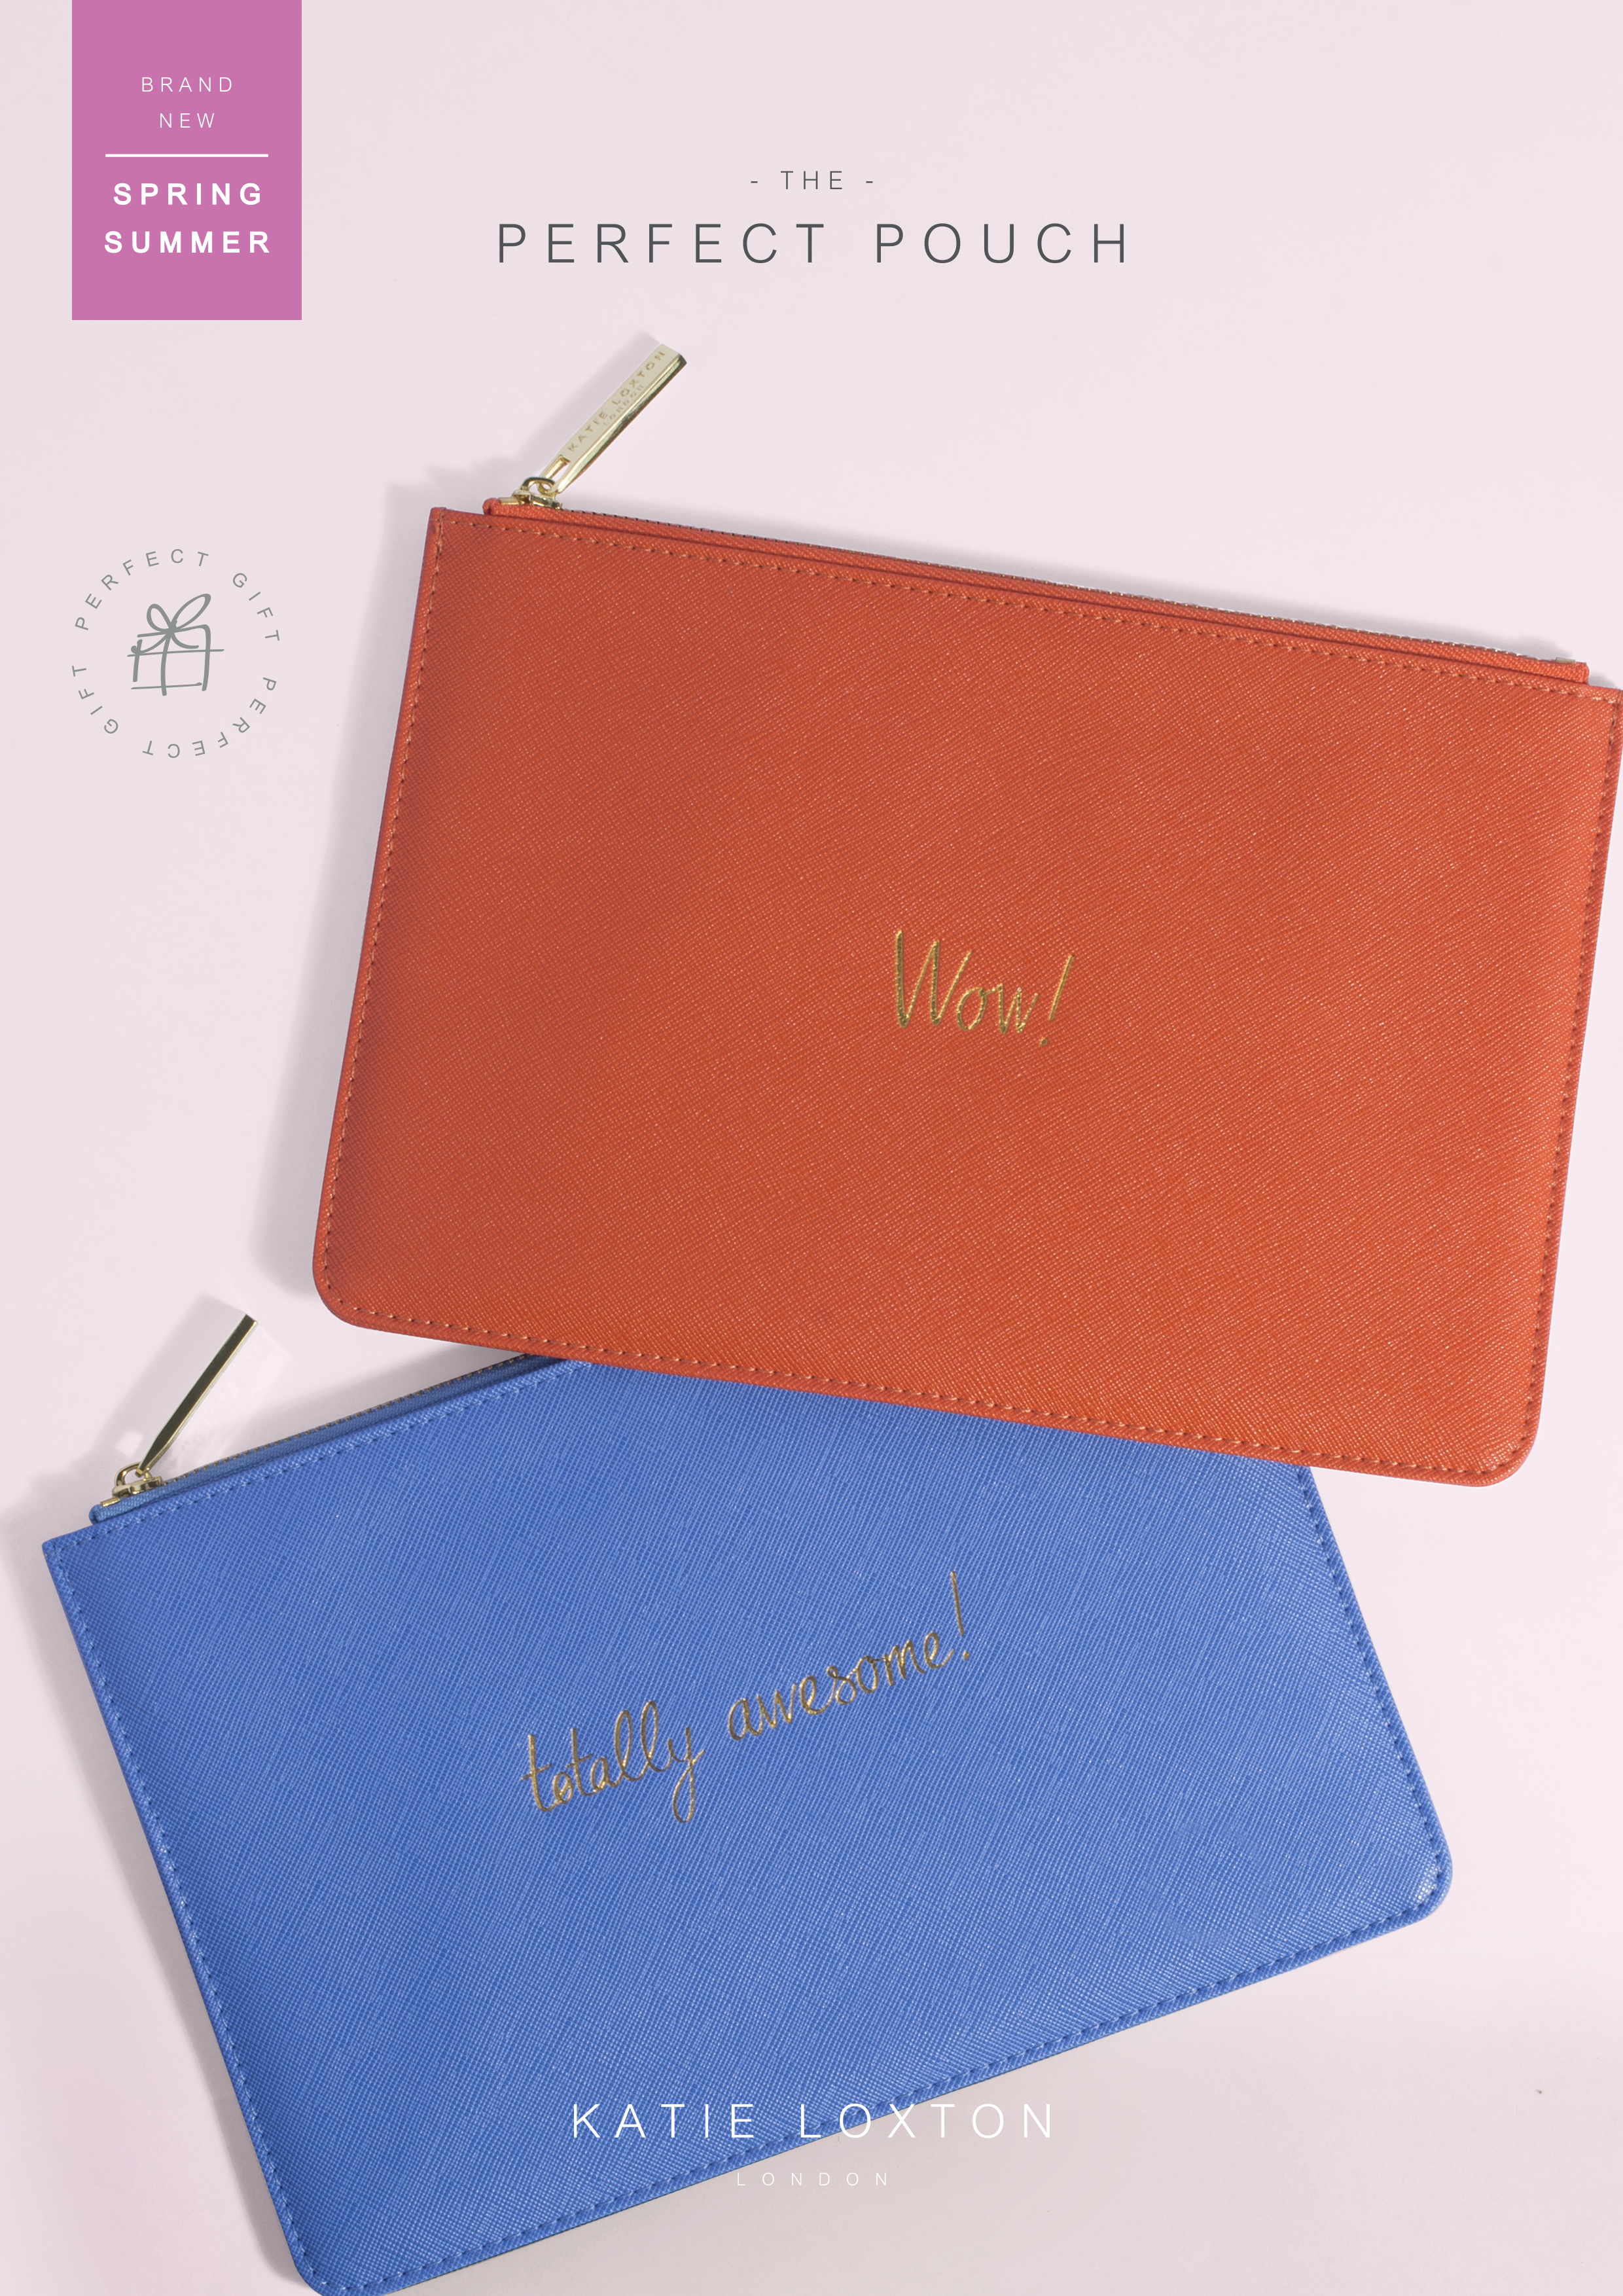 aa0558f1cea Katie Loxton Perfect Pouch orange - 'WOW!' with gift bag & tag ...